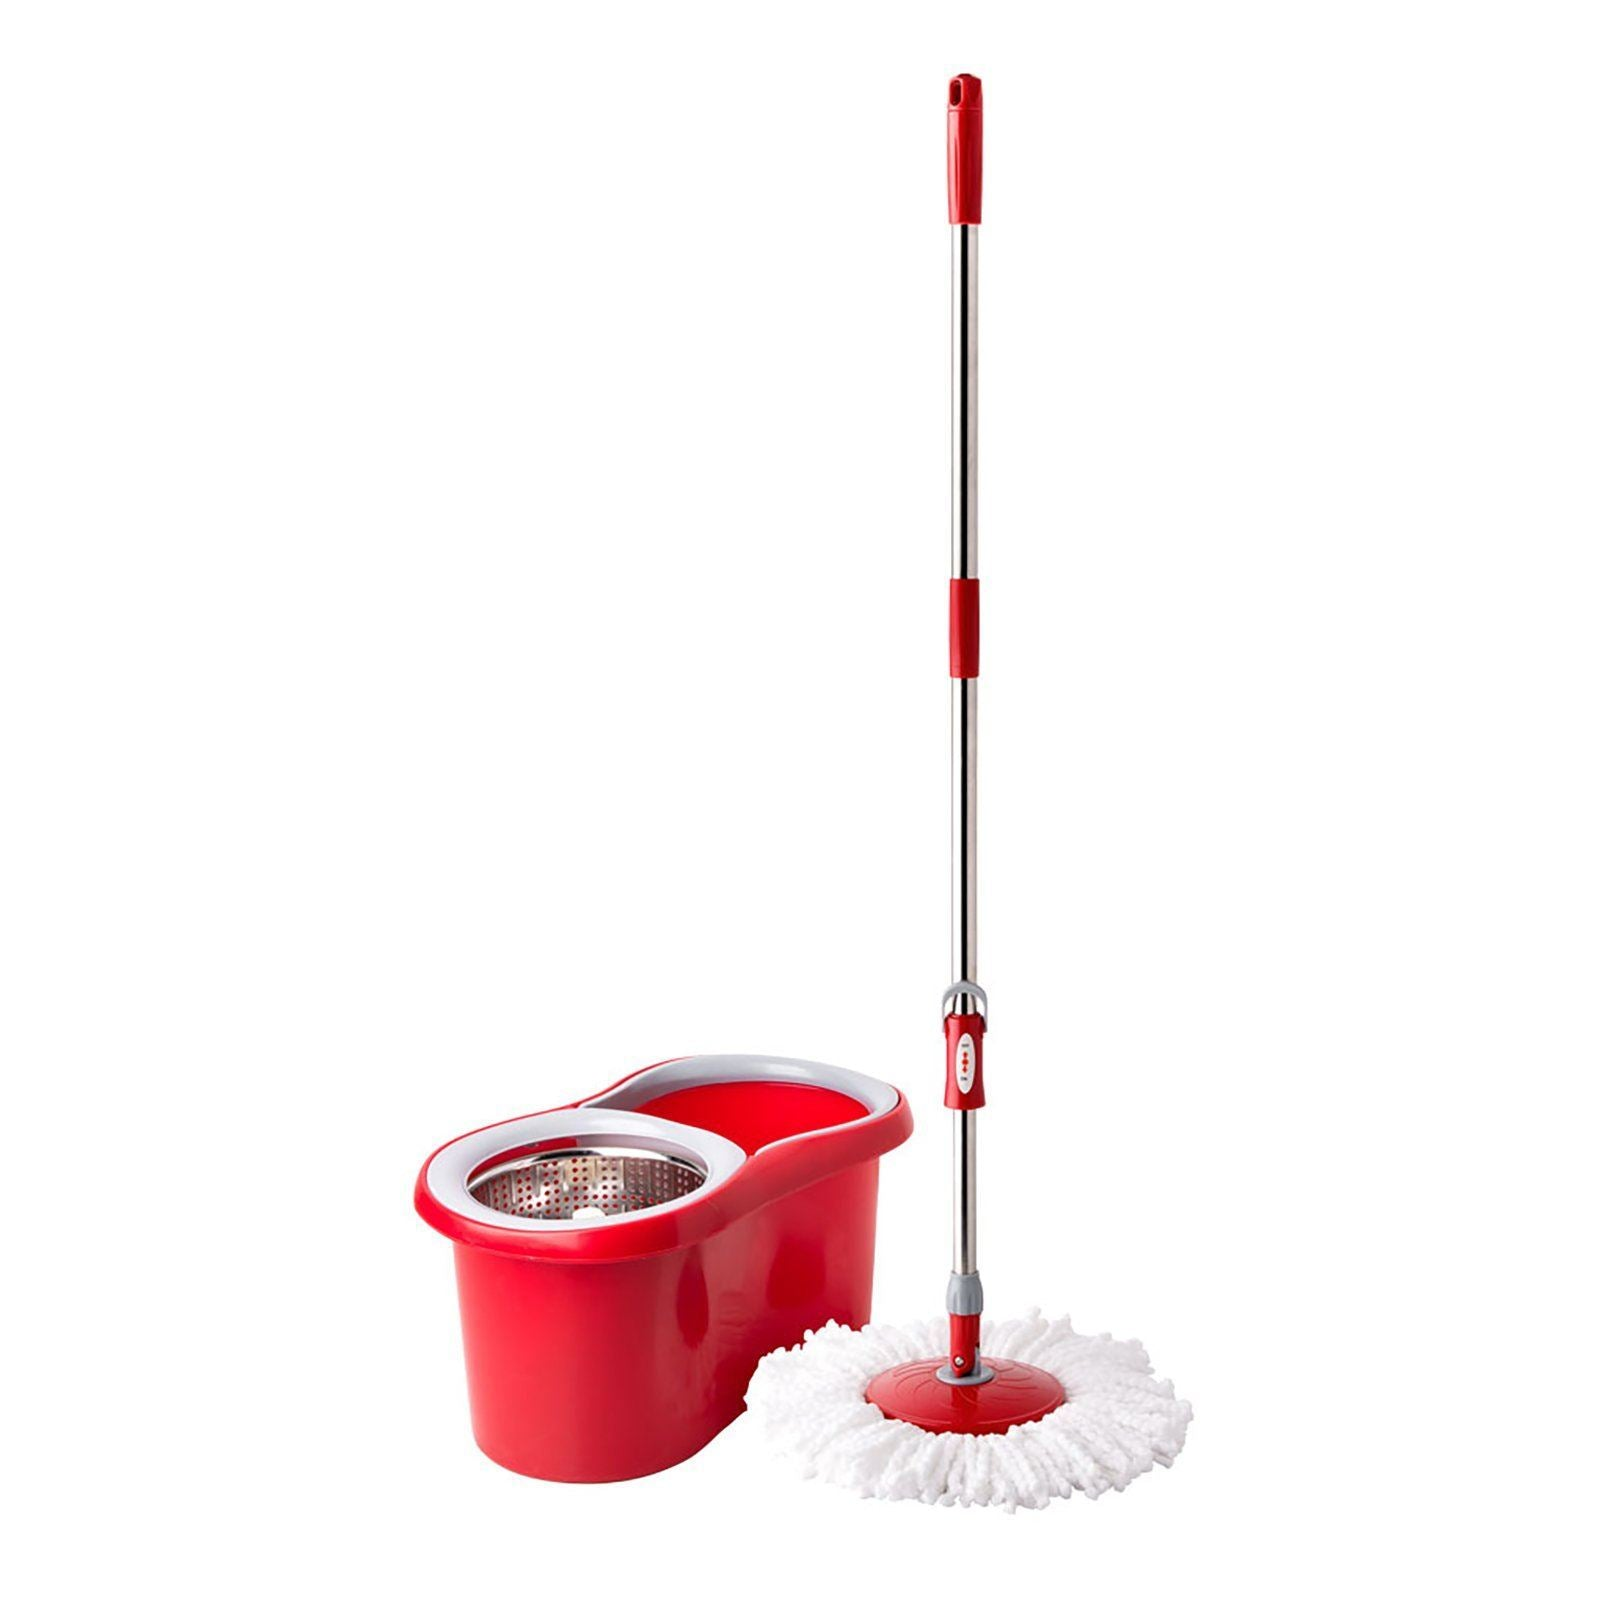 LIAO Tornado Mop - HOUZE - The Homeware Superstore